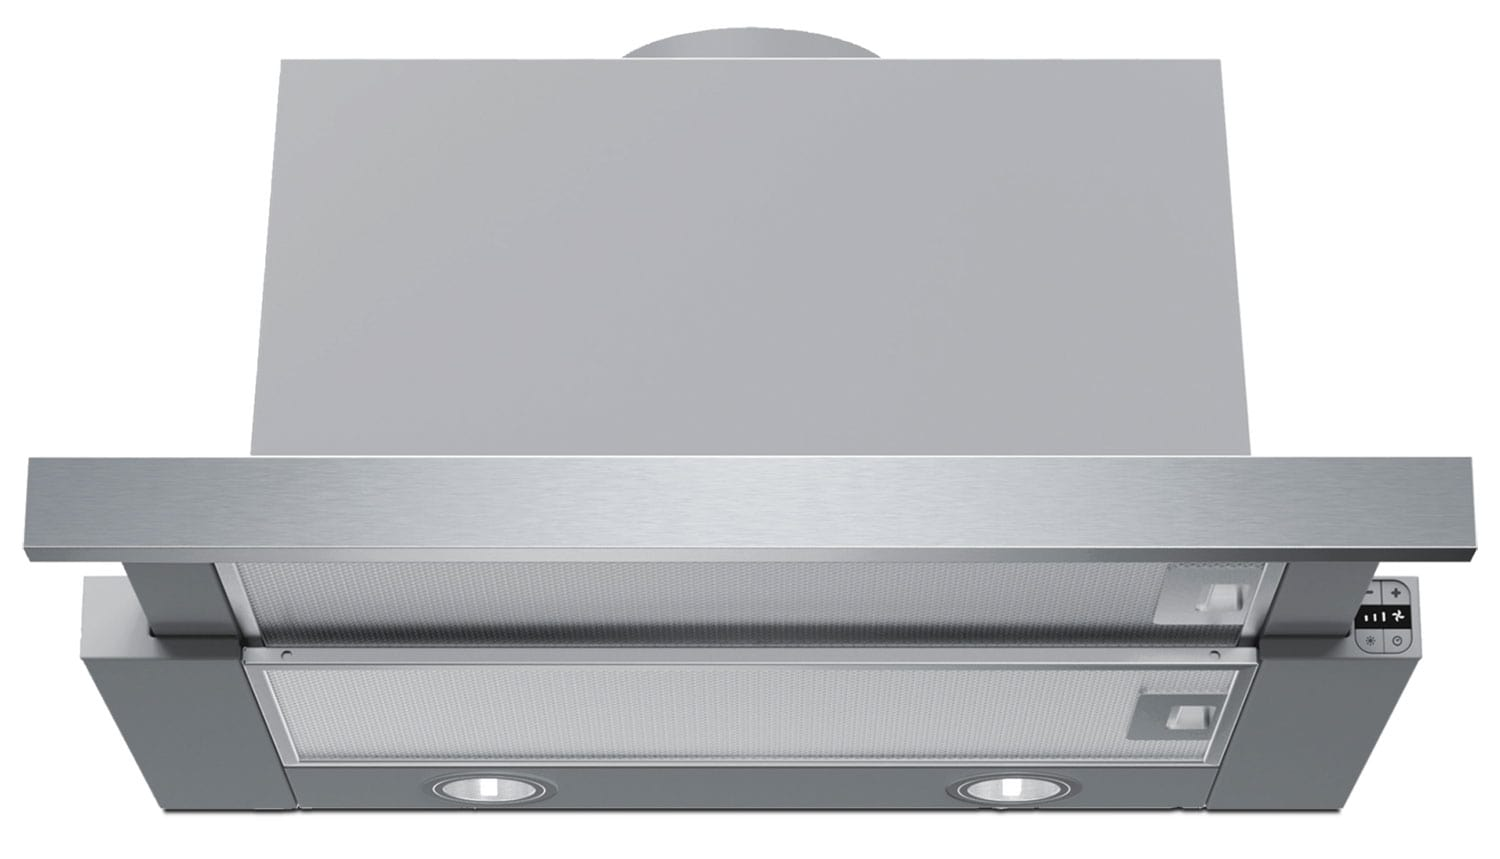 Bosch Stainless Steel Pull-Out Range Hood - HUI54451UC